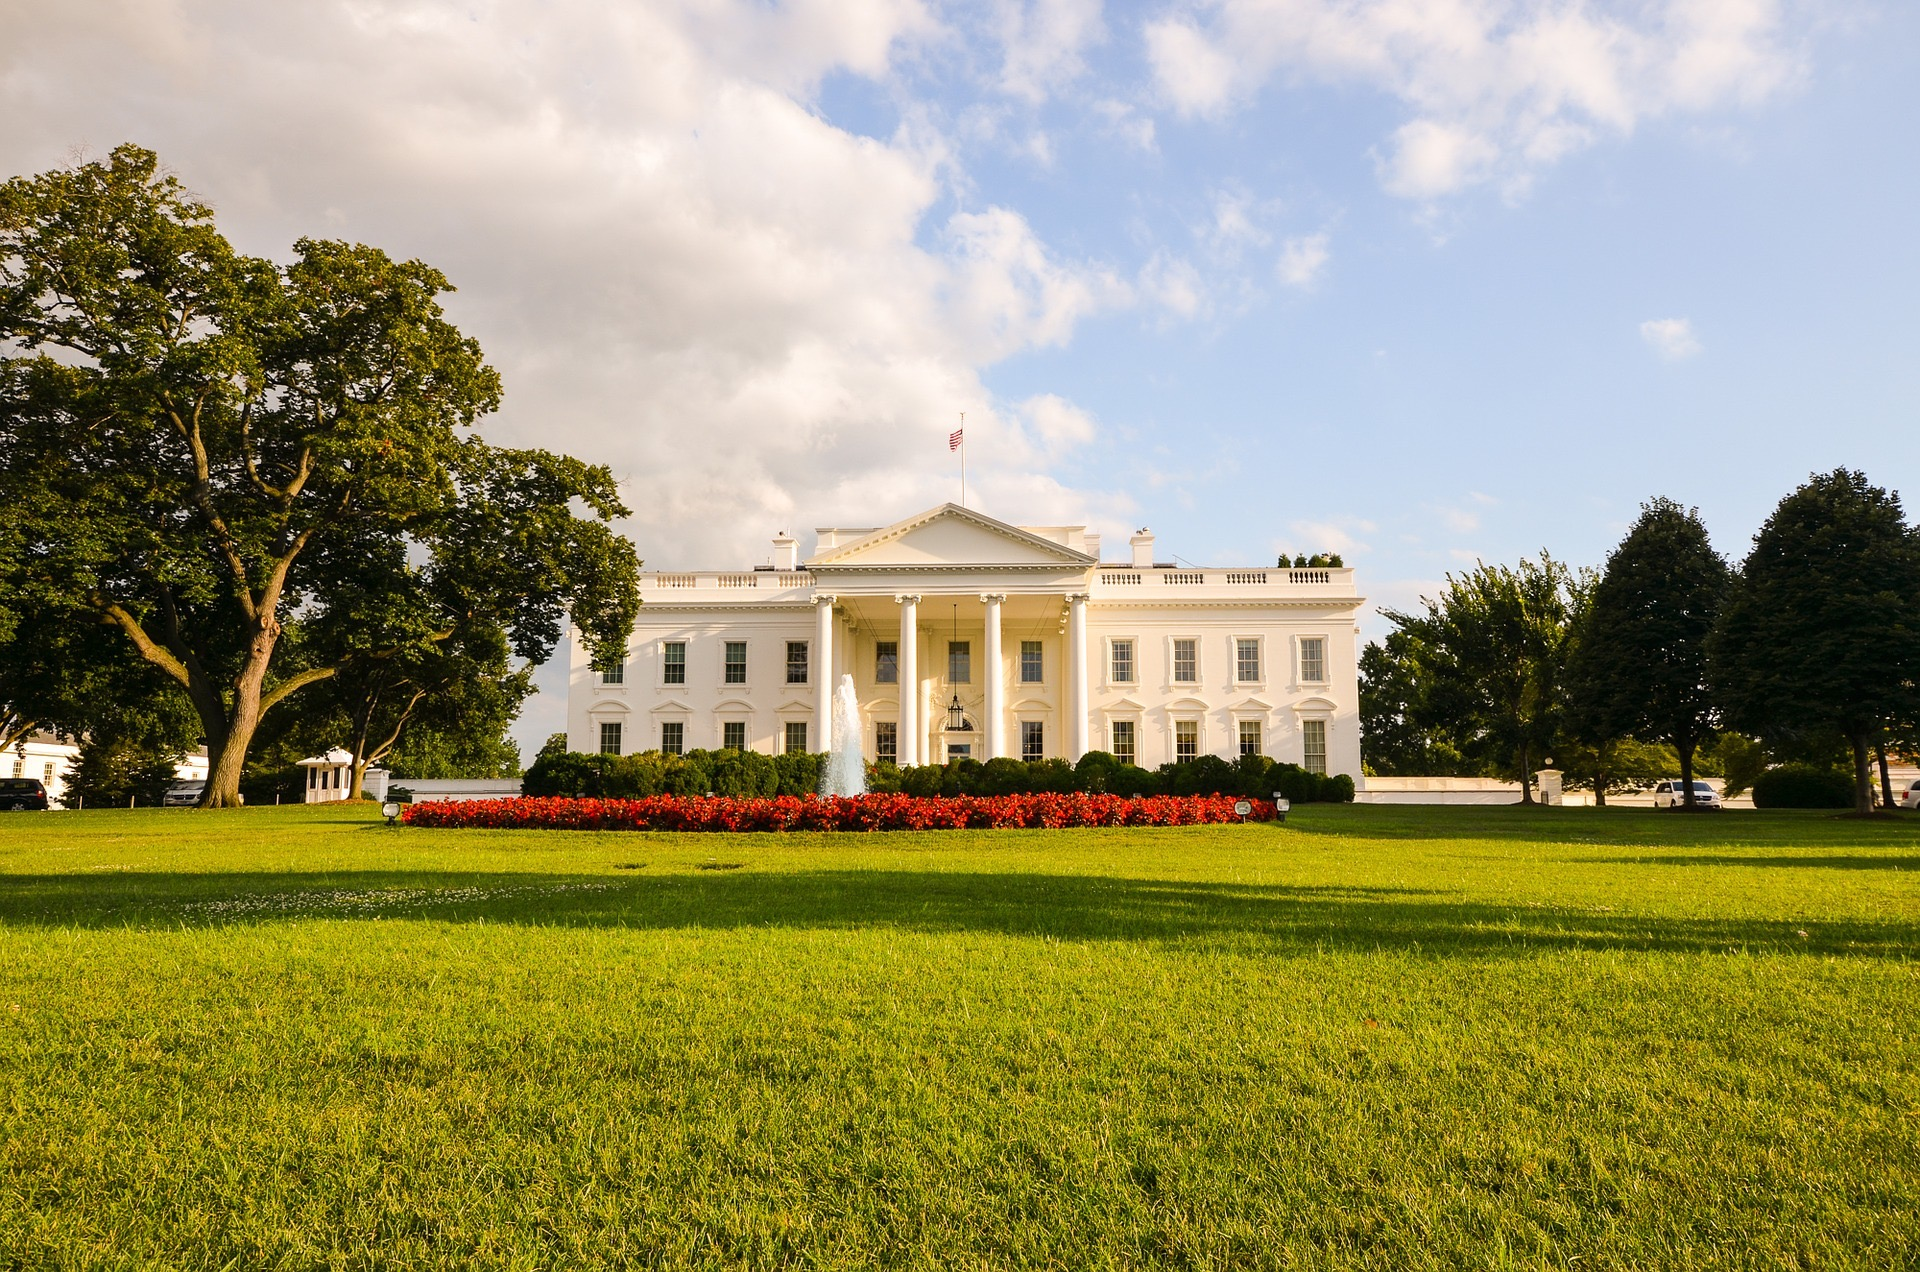 washington-dc-white-house.jpg